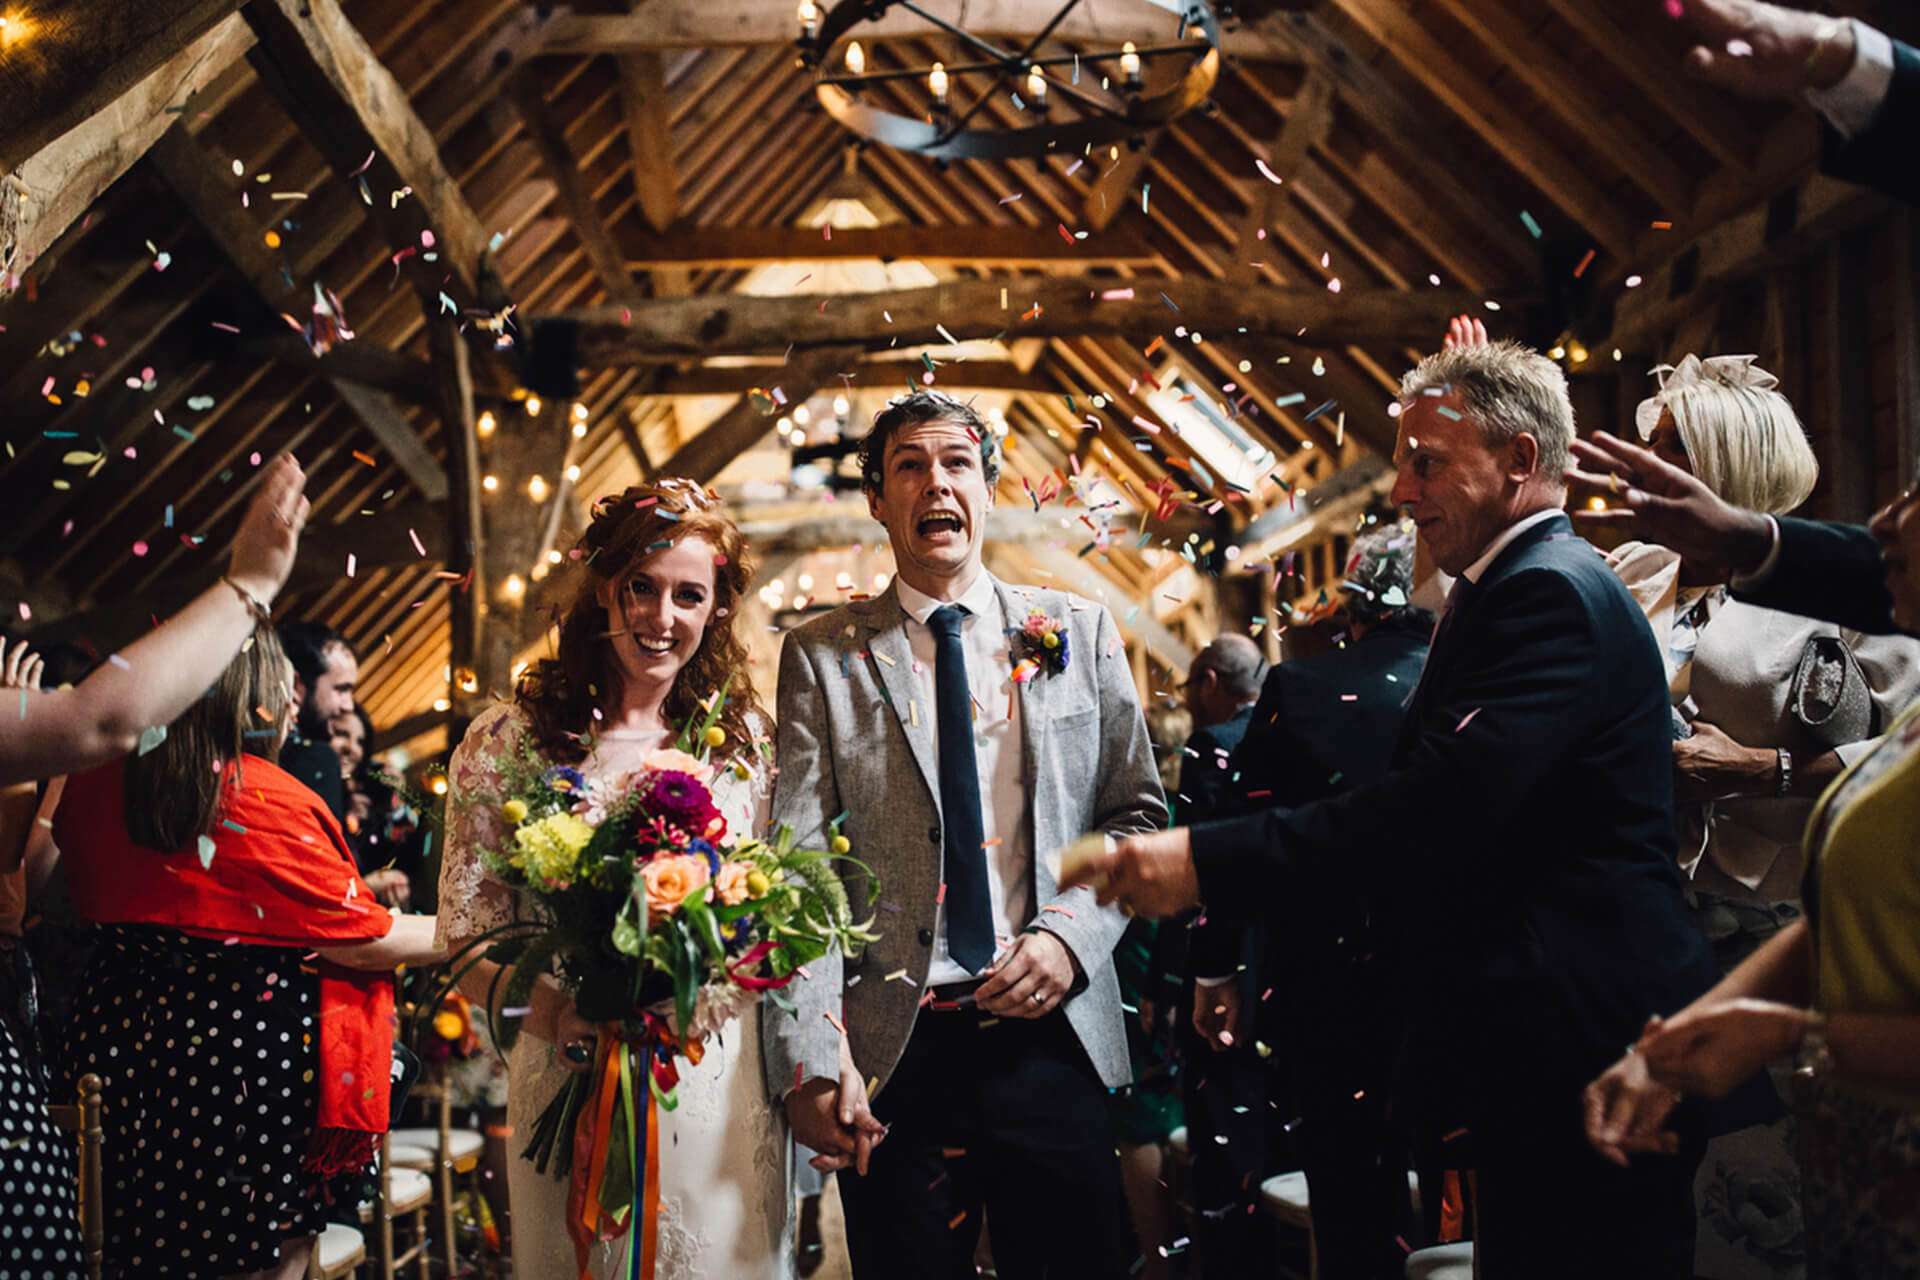 Guests throw wedding confetti over the newlyweds after their wedding ceremony